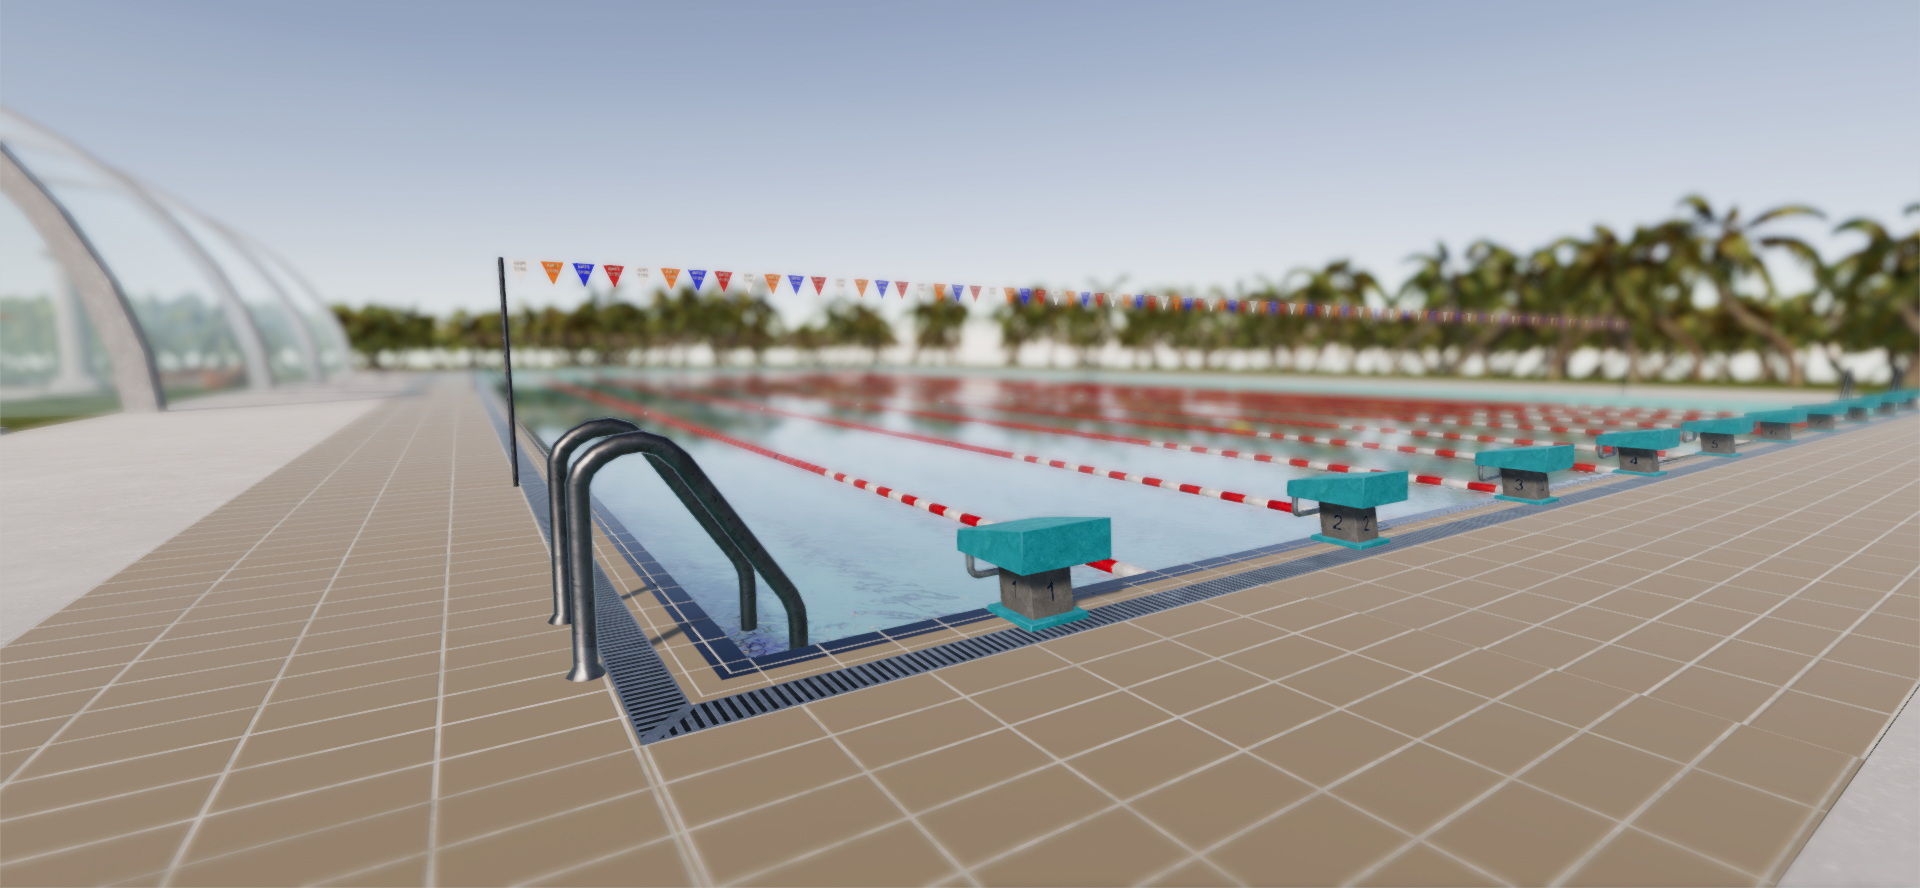 Olympic Pool 1